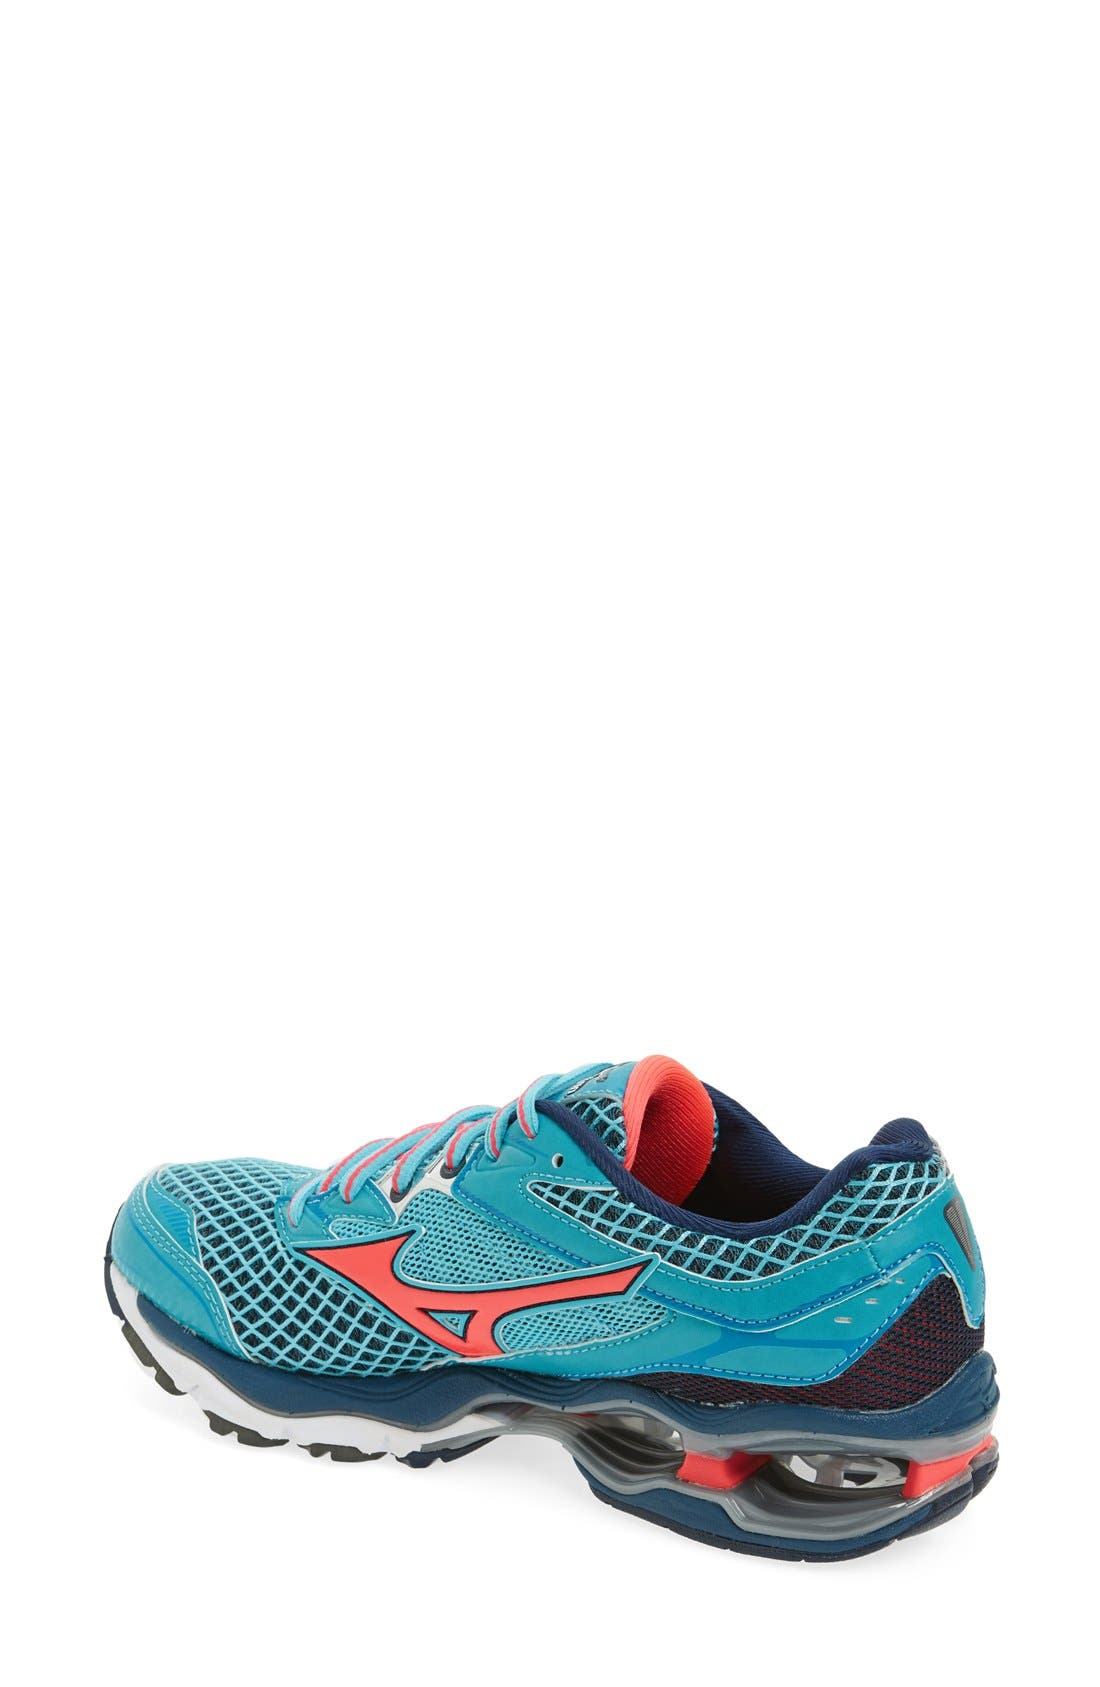 'Wave Creation 18' Running Shoe,                             Alternate thumbnail 2, color,                             334